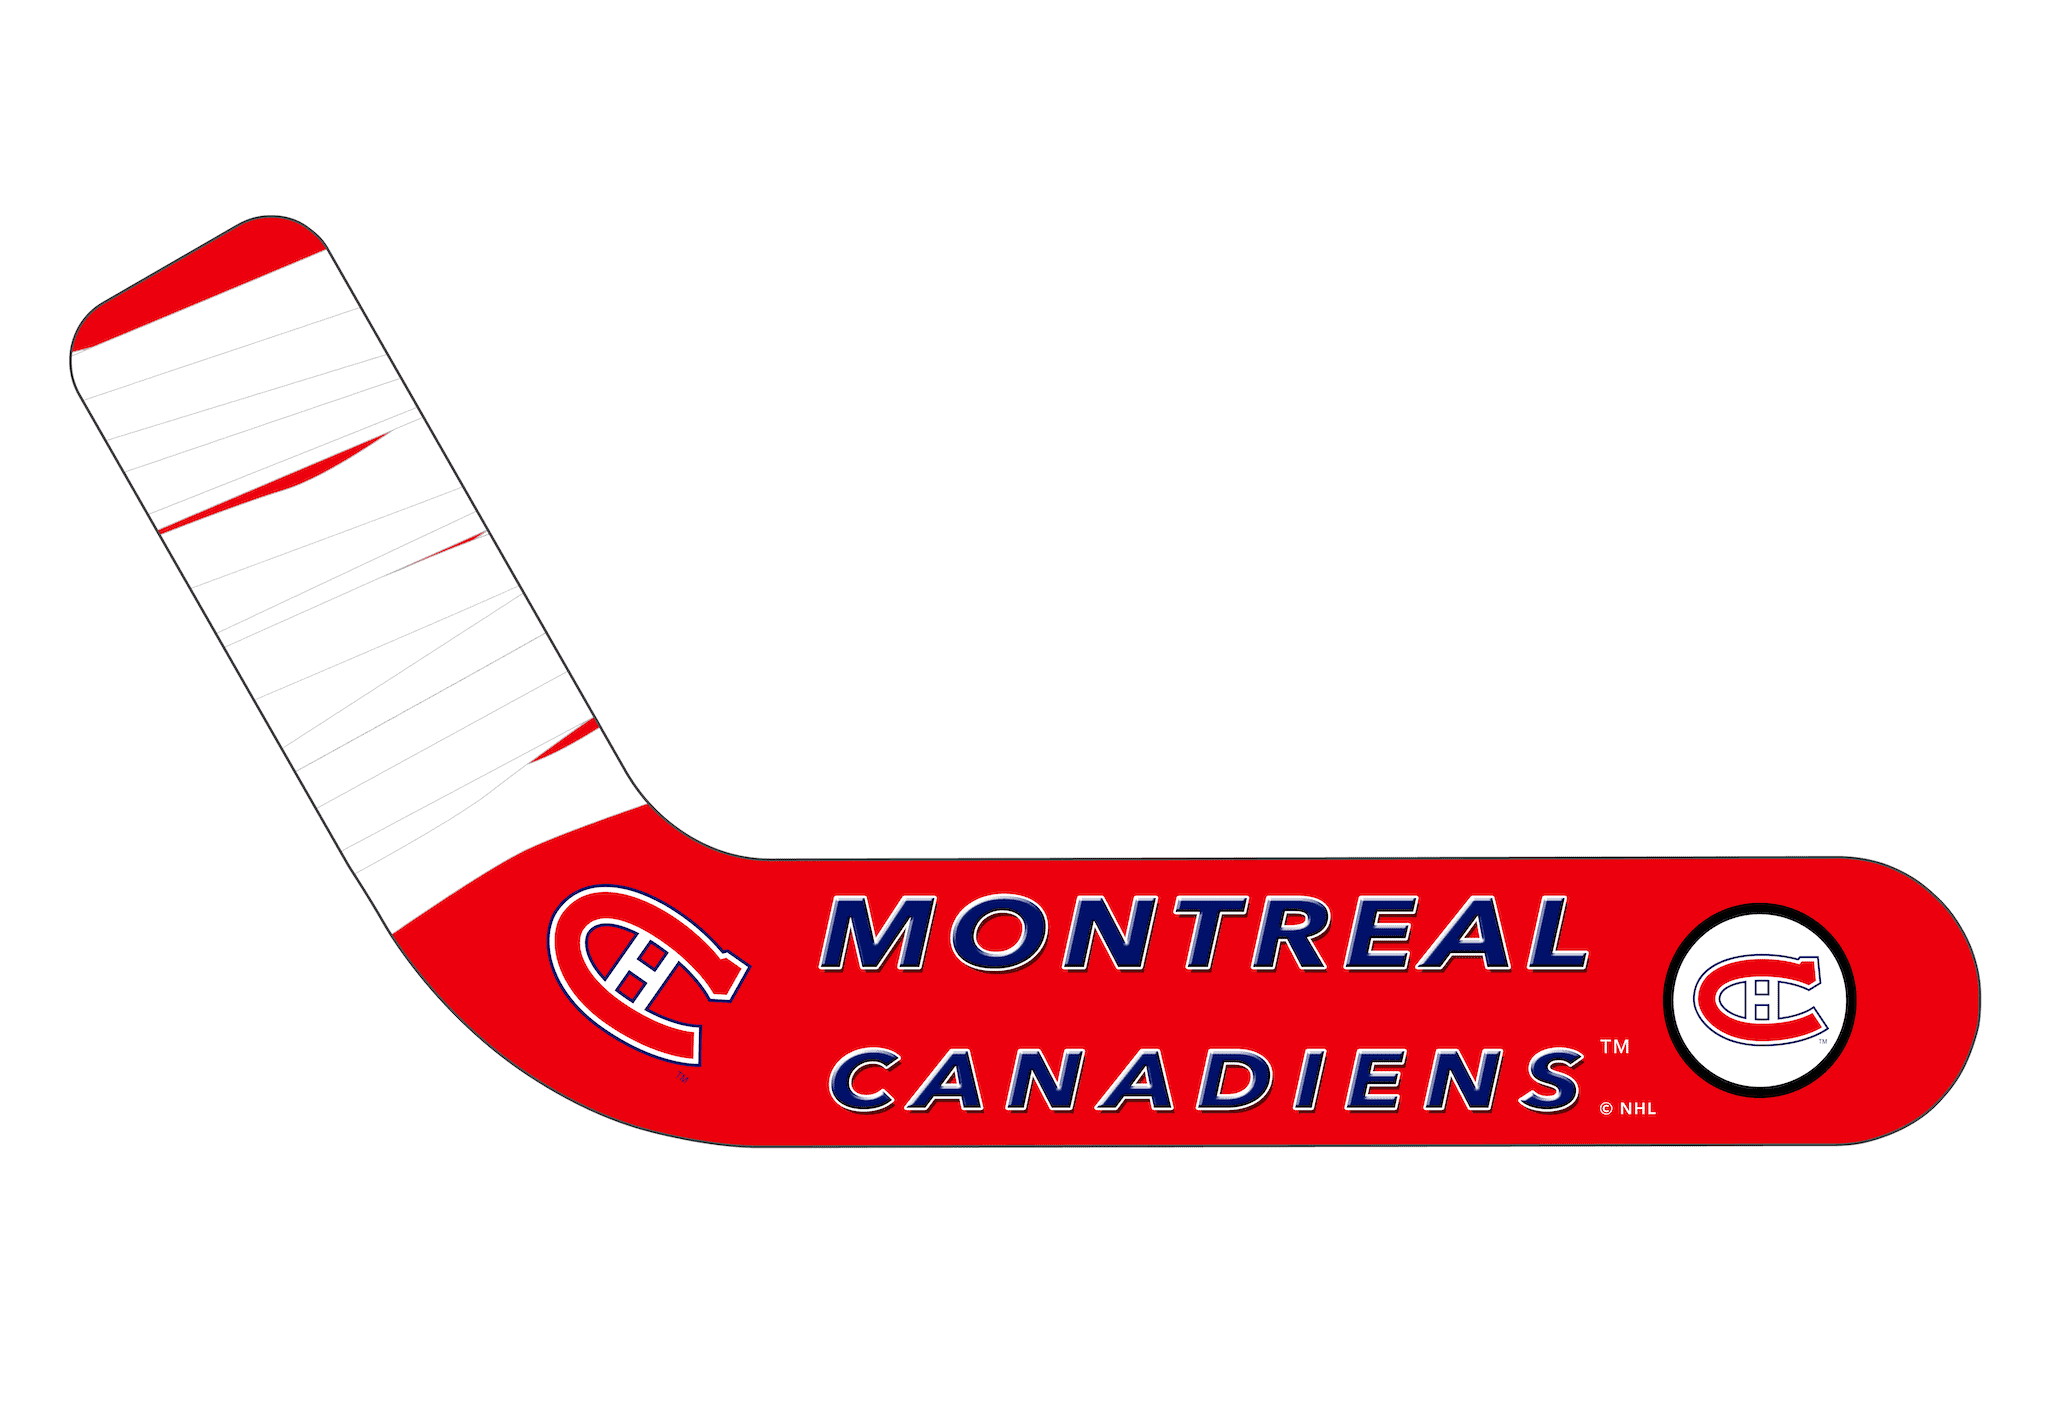 Vintage Montreal 1917-1918 - Ultimate Hockey Ceiling Fans